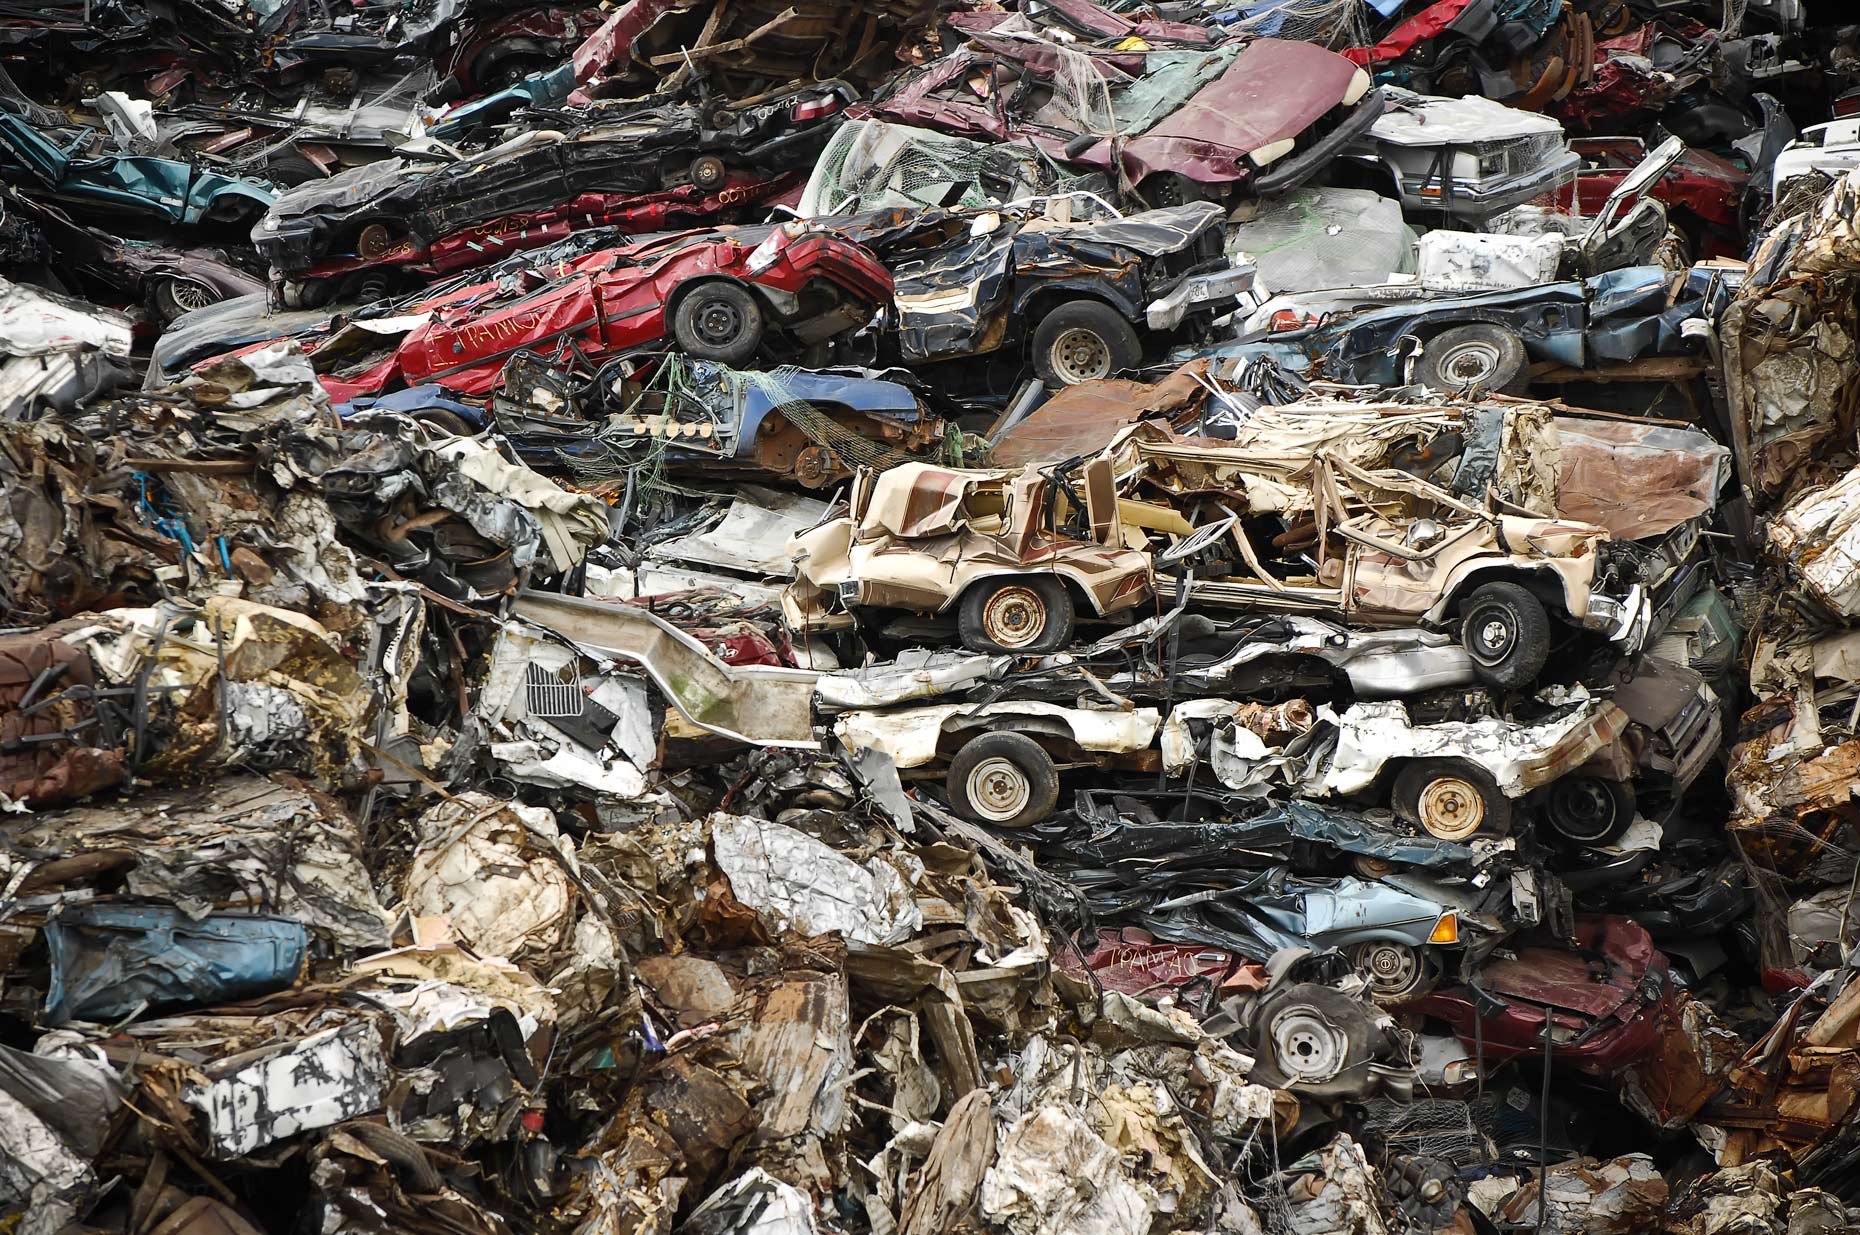 Crushed cars in Houston, Texas by Kevin Brown.